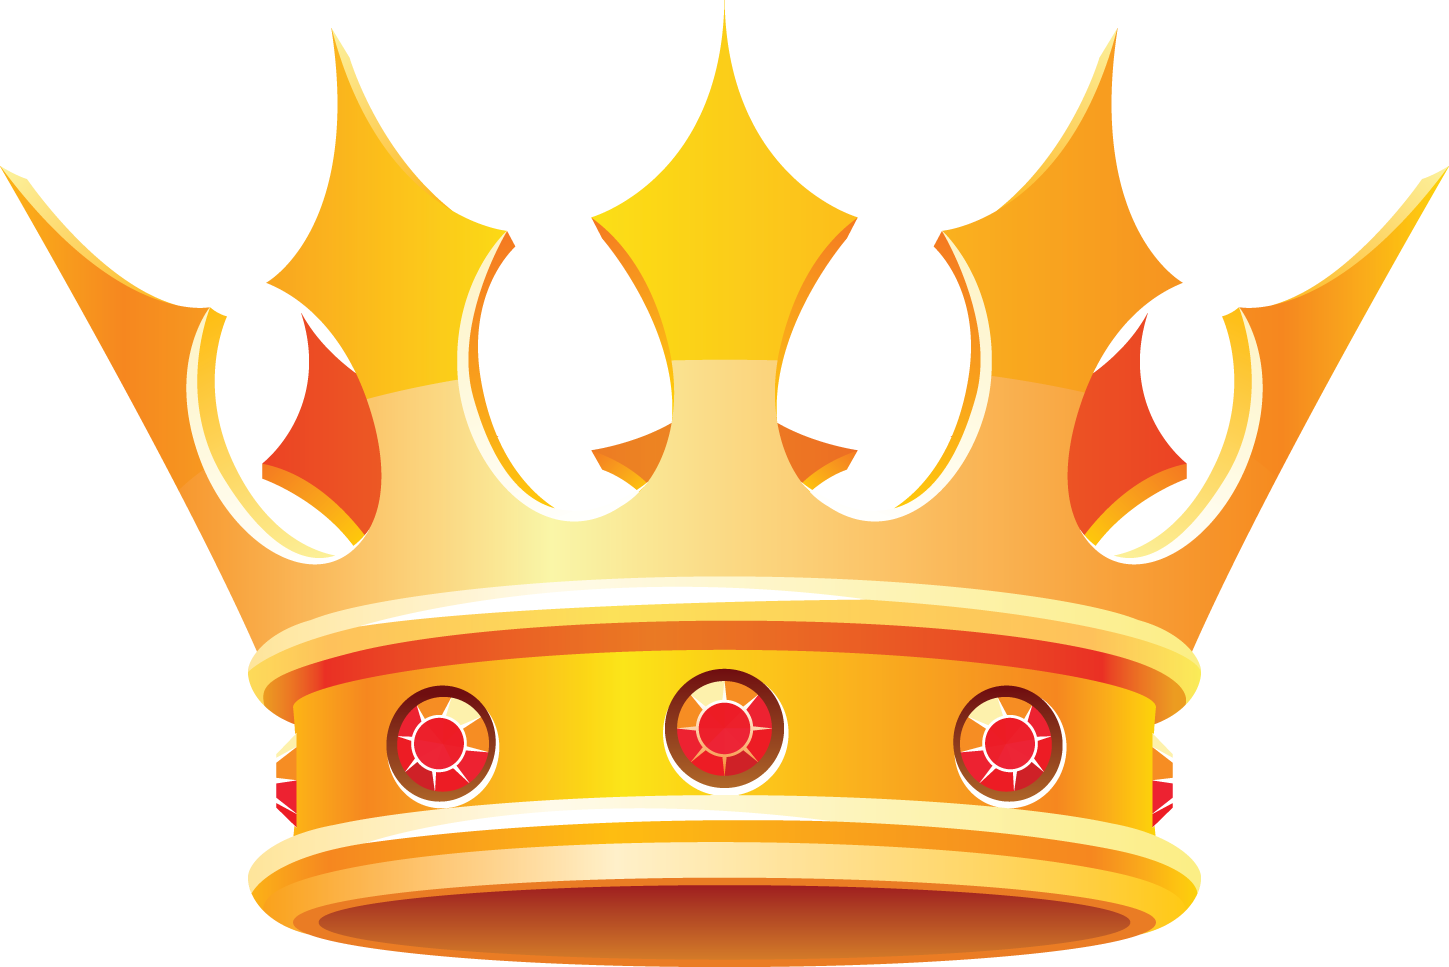 King getting crowned clipart jpg black and white stock Crown transparent showing post 2 | Crowns | King size mattress ... jpg black and white stock